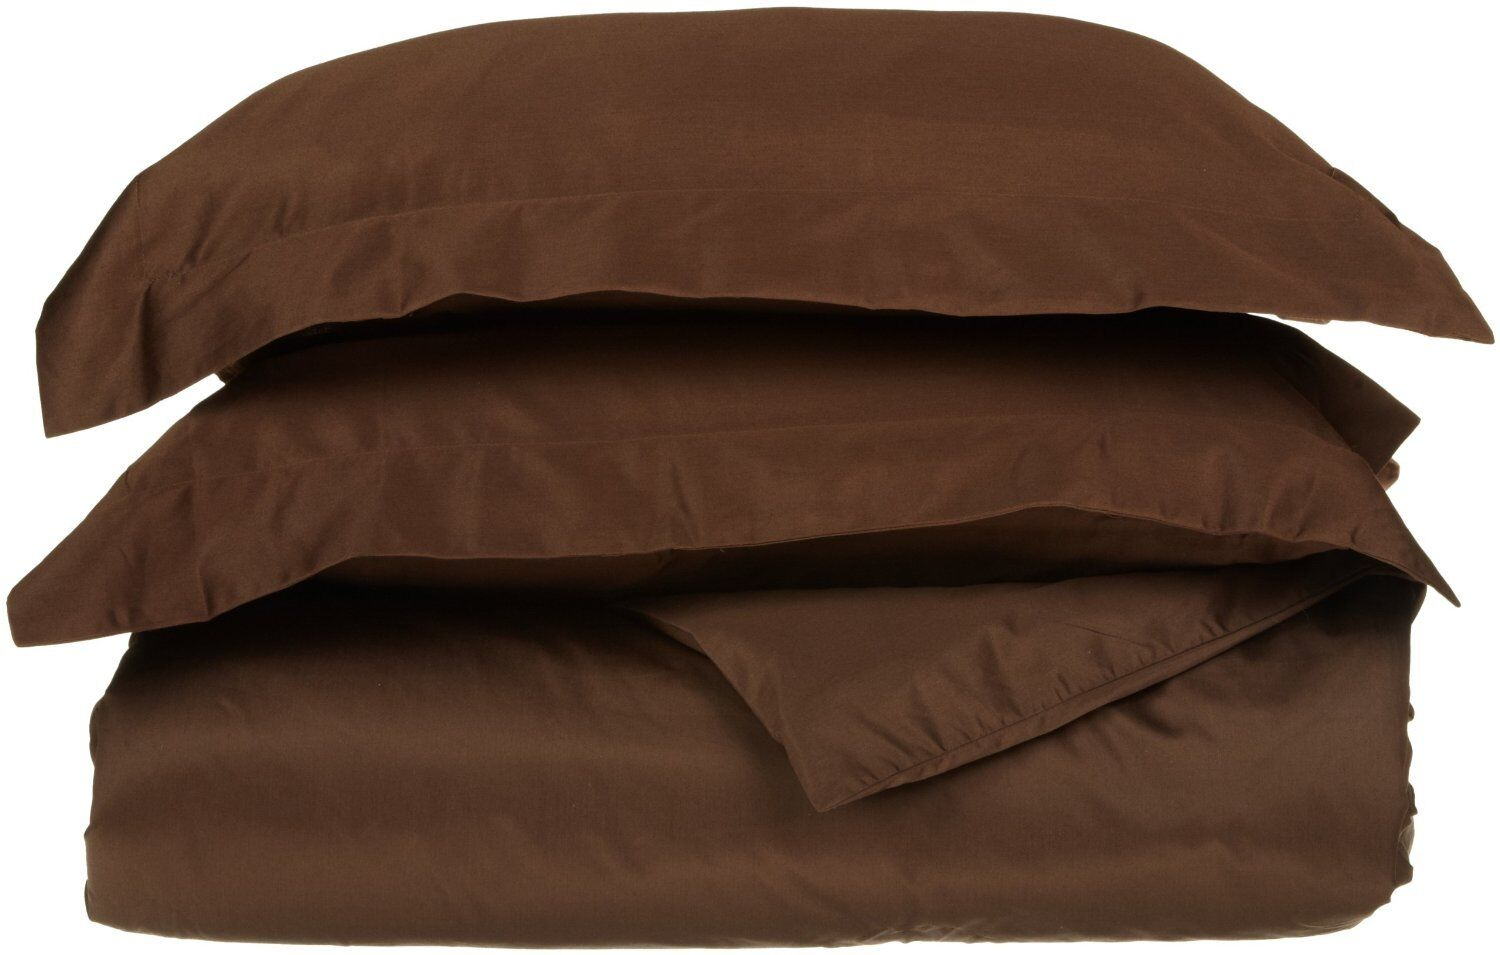 LUXOR  100% Egyptian Cotton 600TC Solid Sateen Bed Sheet Set Cal King- Chocolate